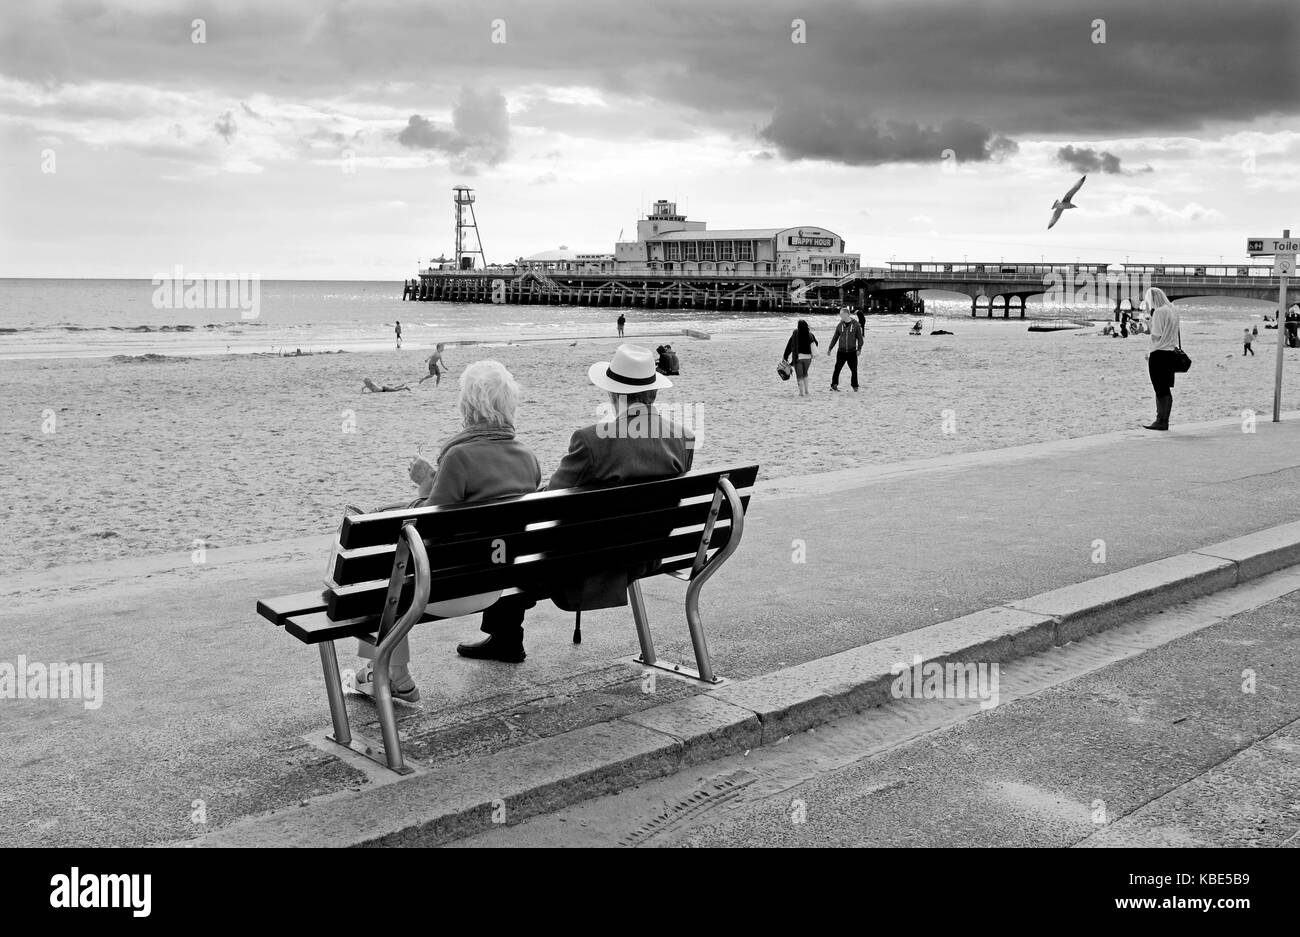 Bournemouth September 2017 - Dark clouds over Bournemouth beach and pier - Stock Image